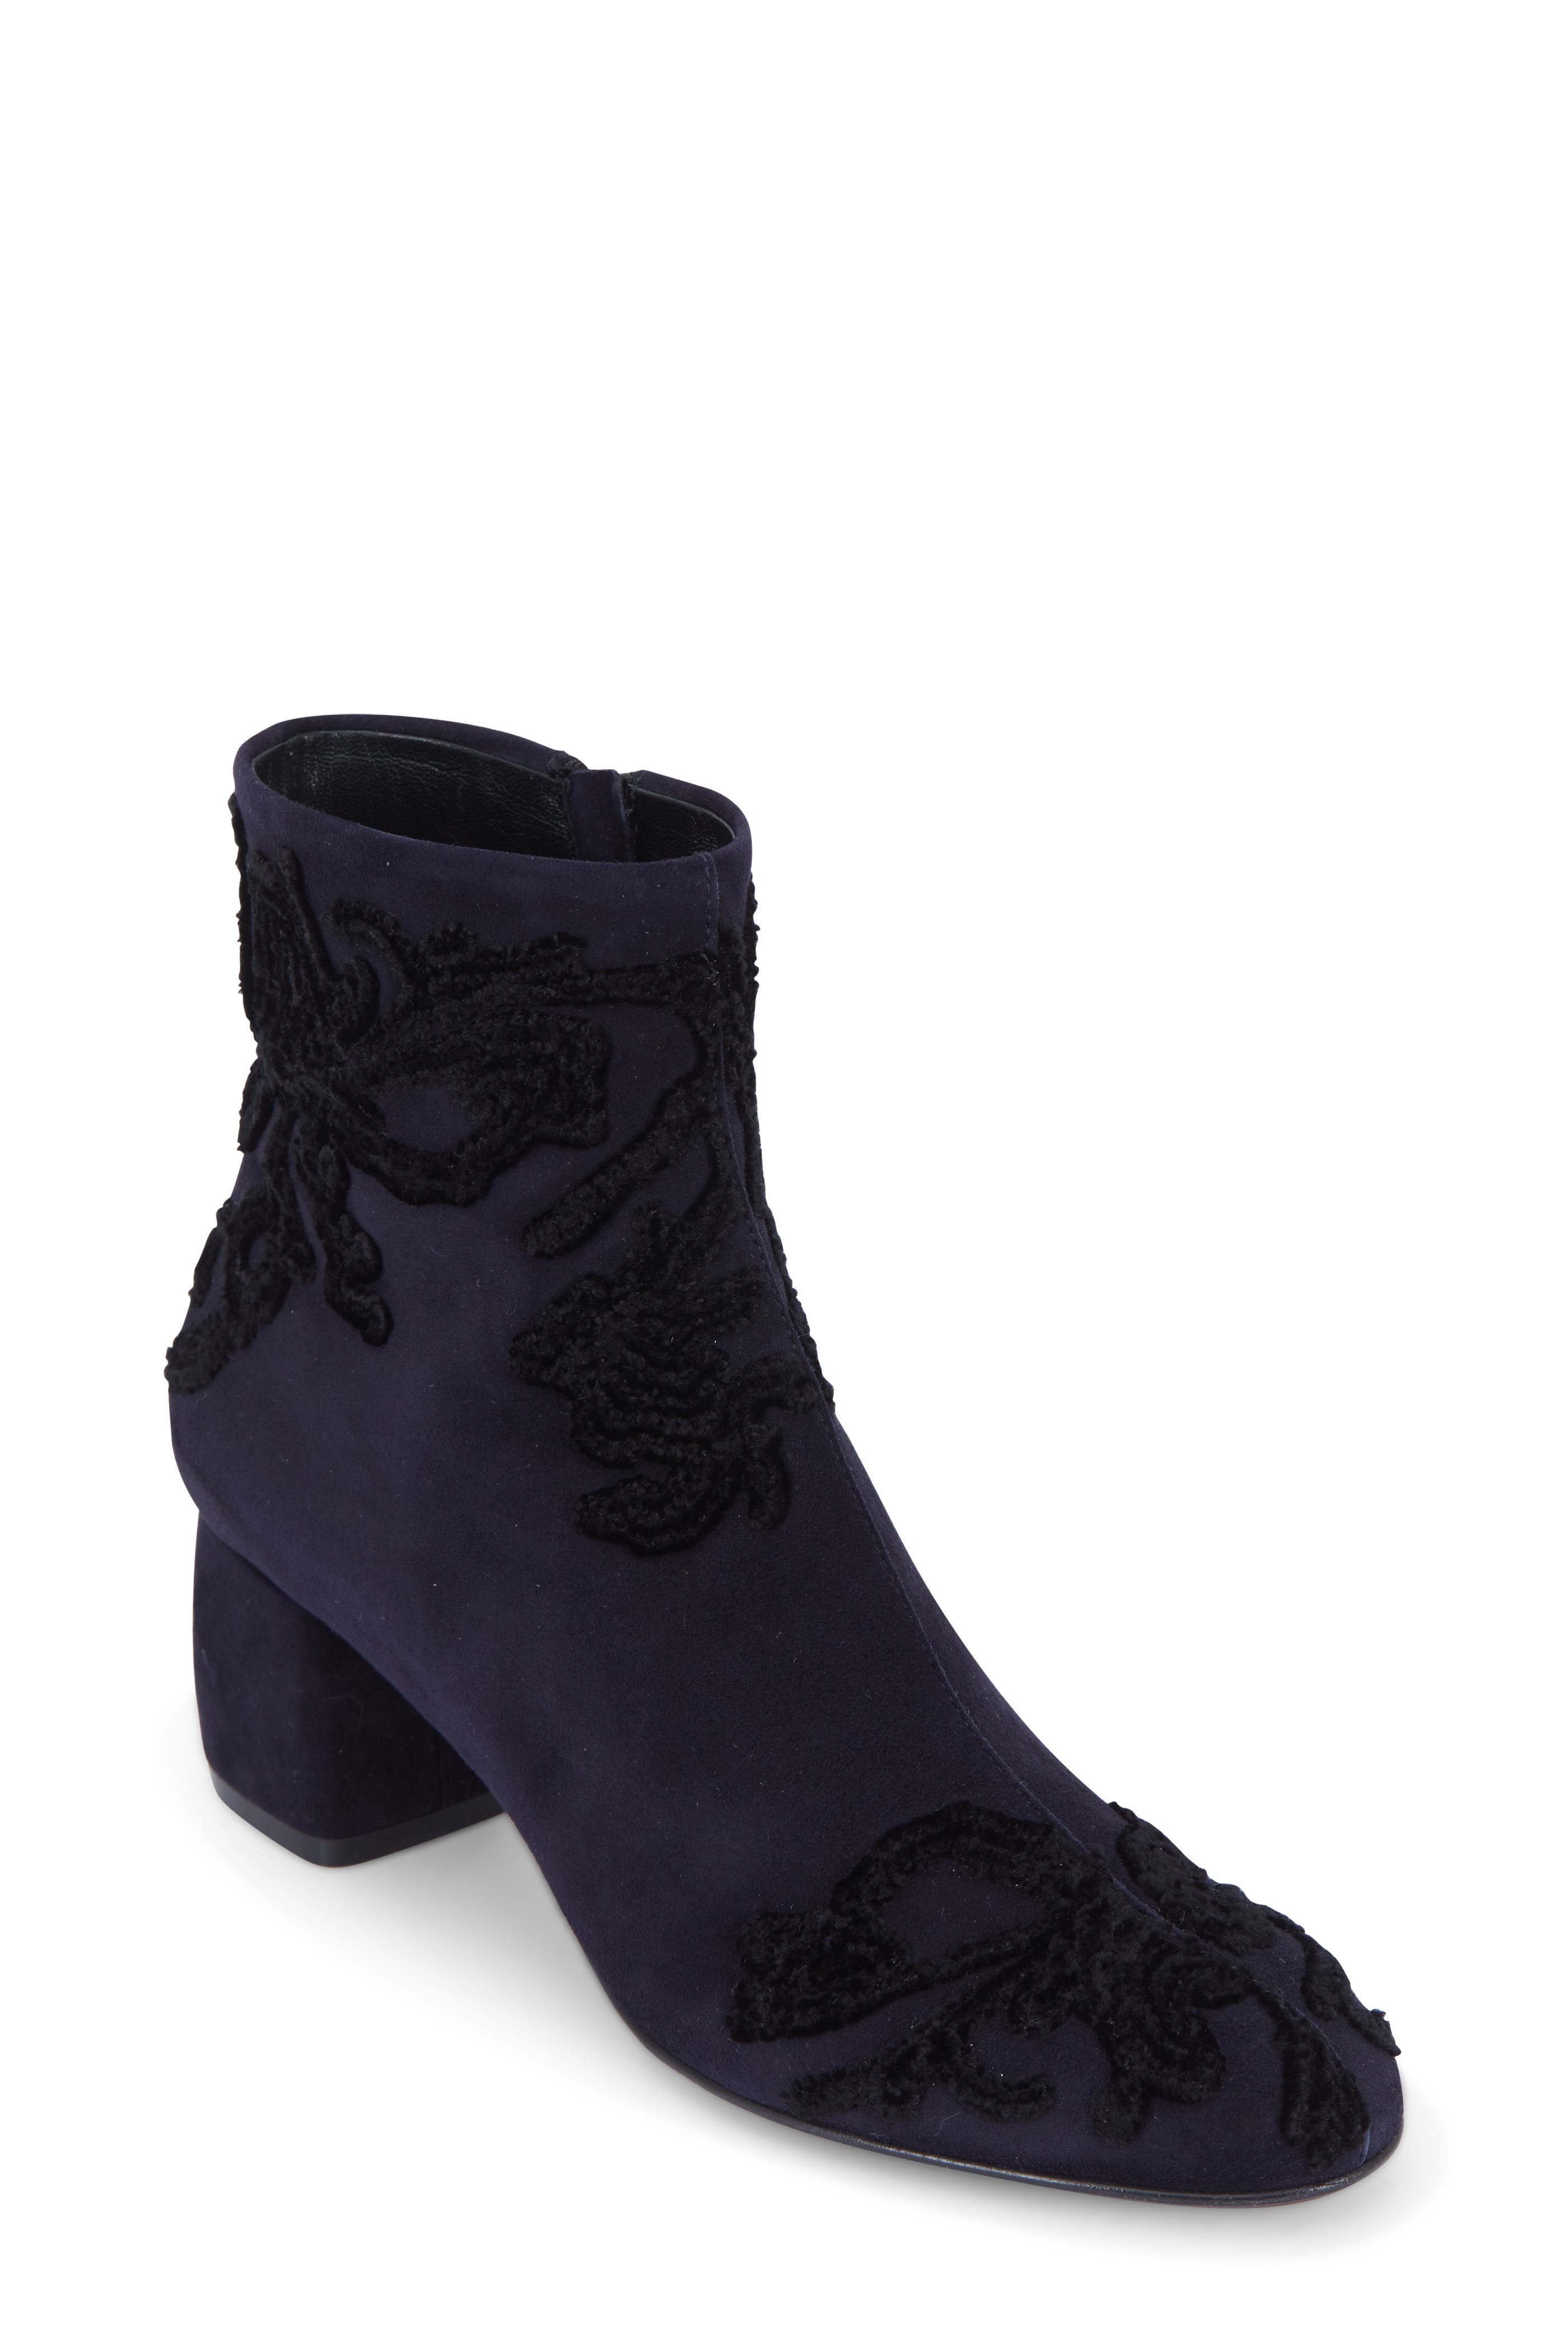 0f82d5c478a AGL - Navy Blue Suede Embroidered Ankle Boot